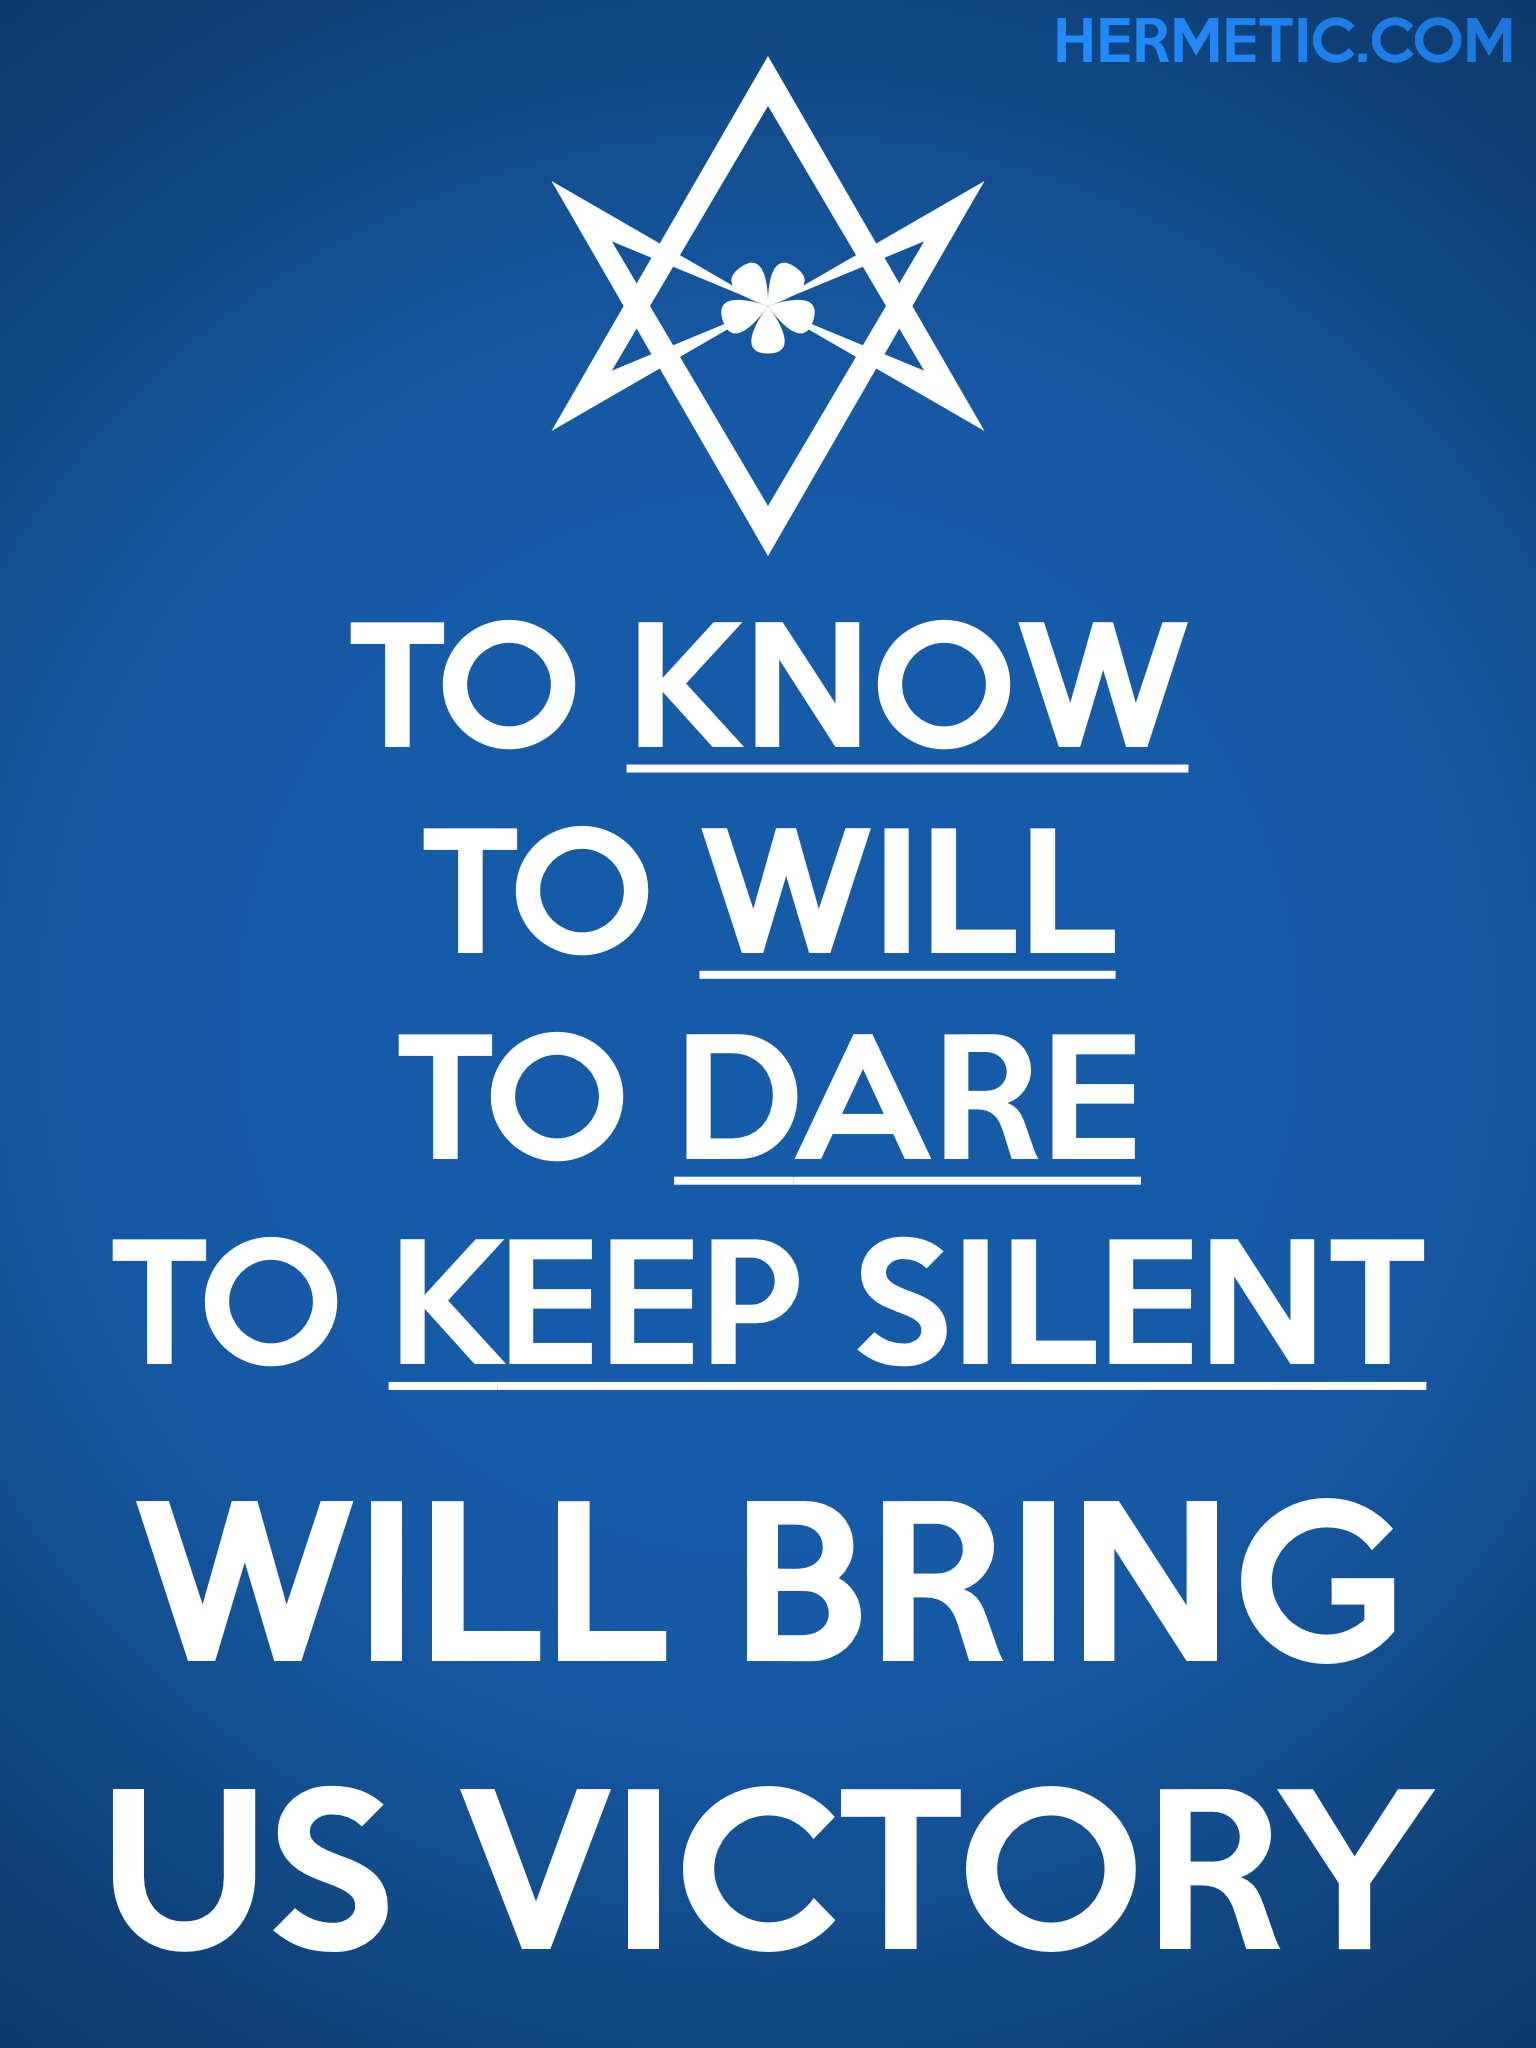 Unicursal KNOW WILL DARE KEEP SILENT Propaganda Poster from Hermetic Library Office of the Ministry of Information